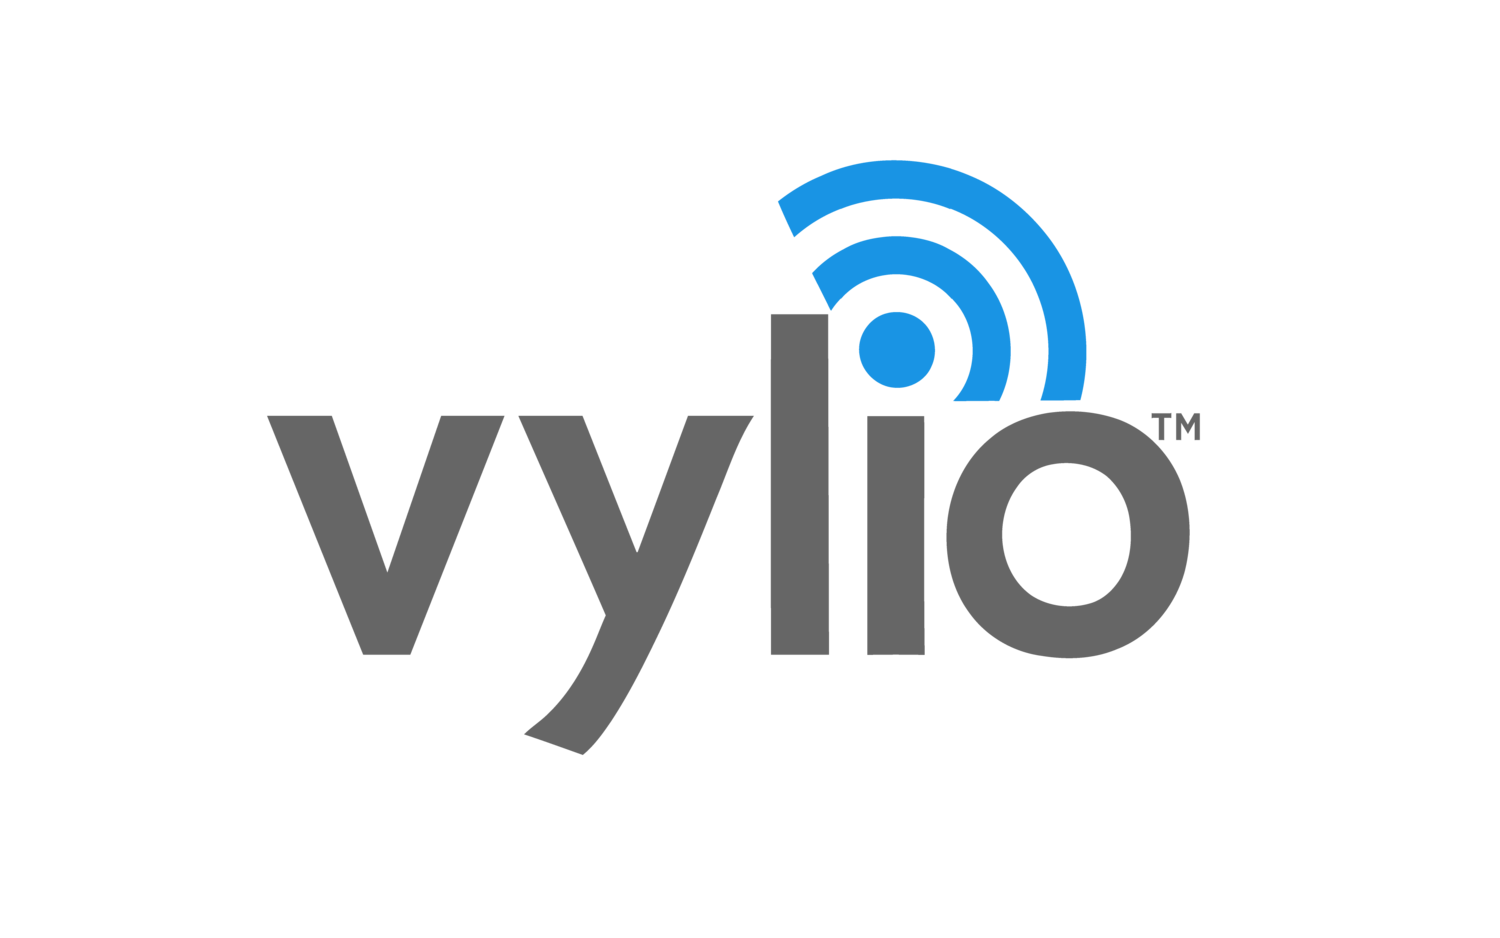 Vylio - Free and Global GPS Tracking